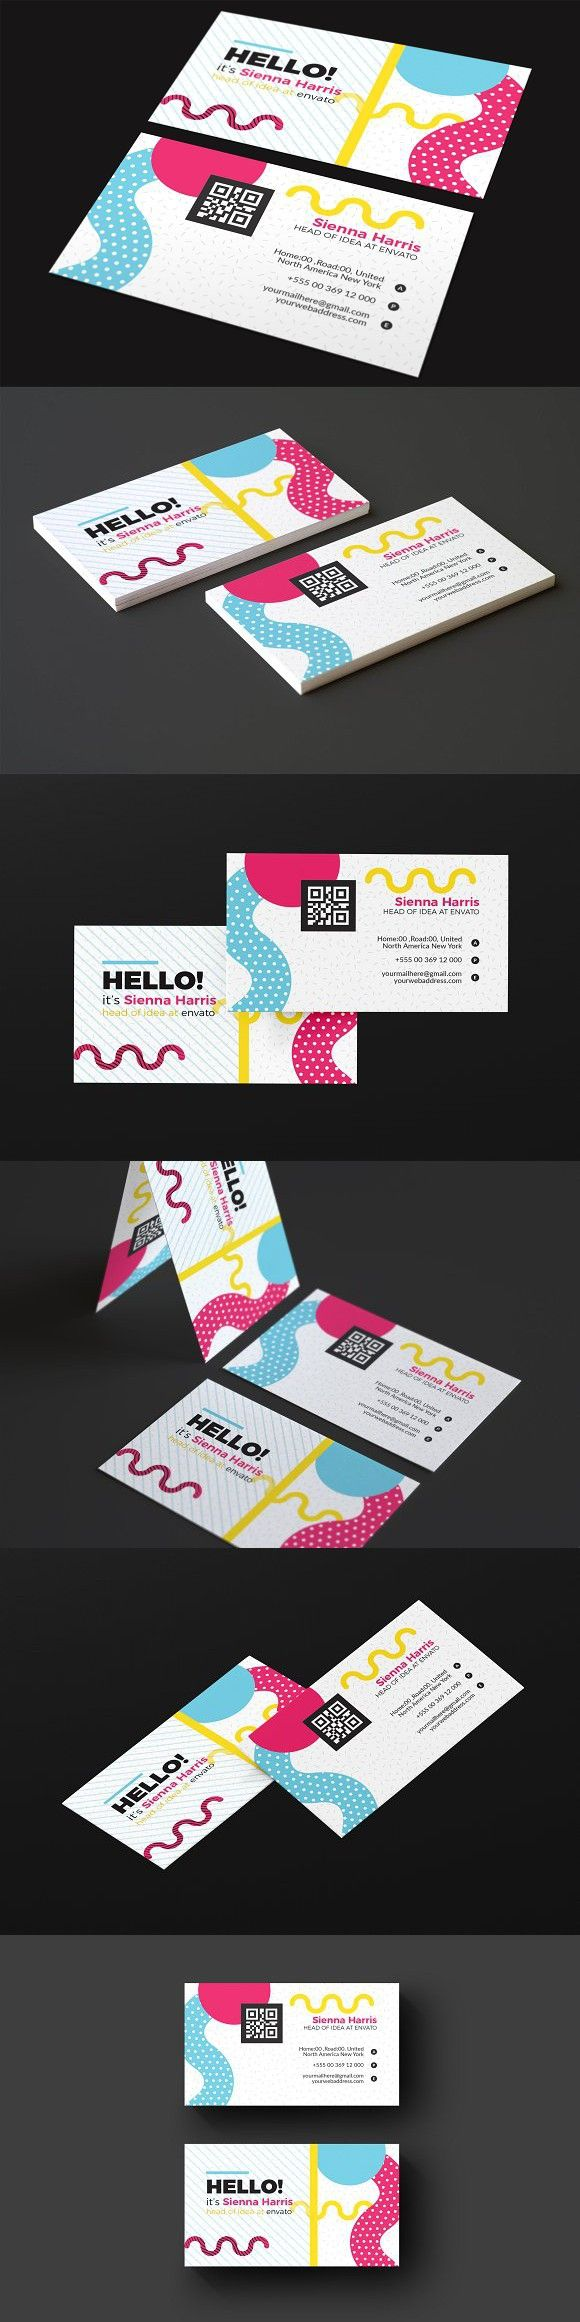 Memphis Business Card | Memphis, Business cards and Business